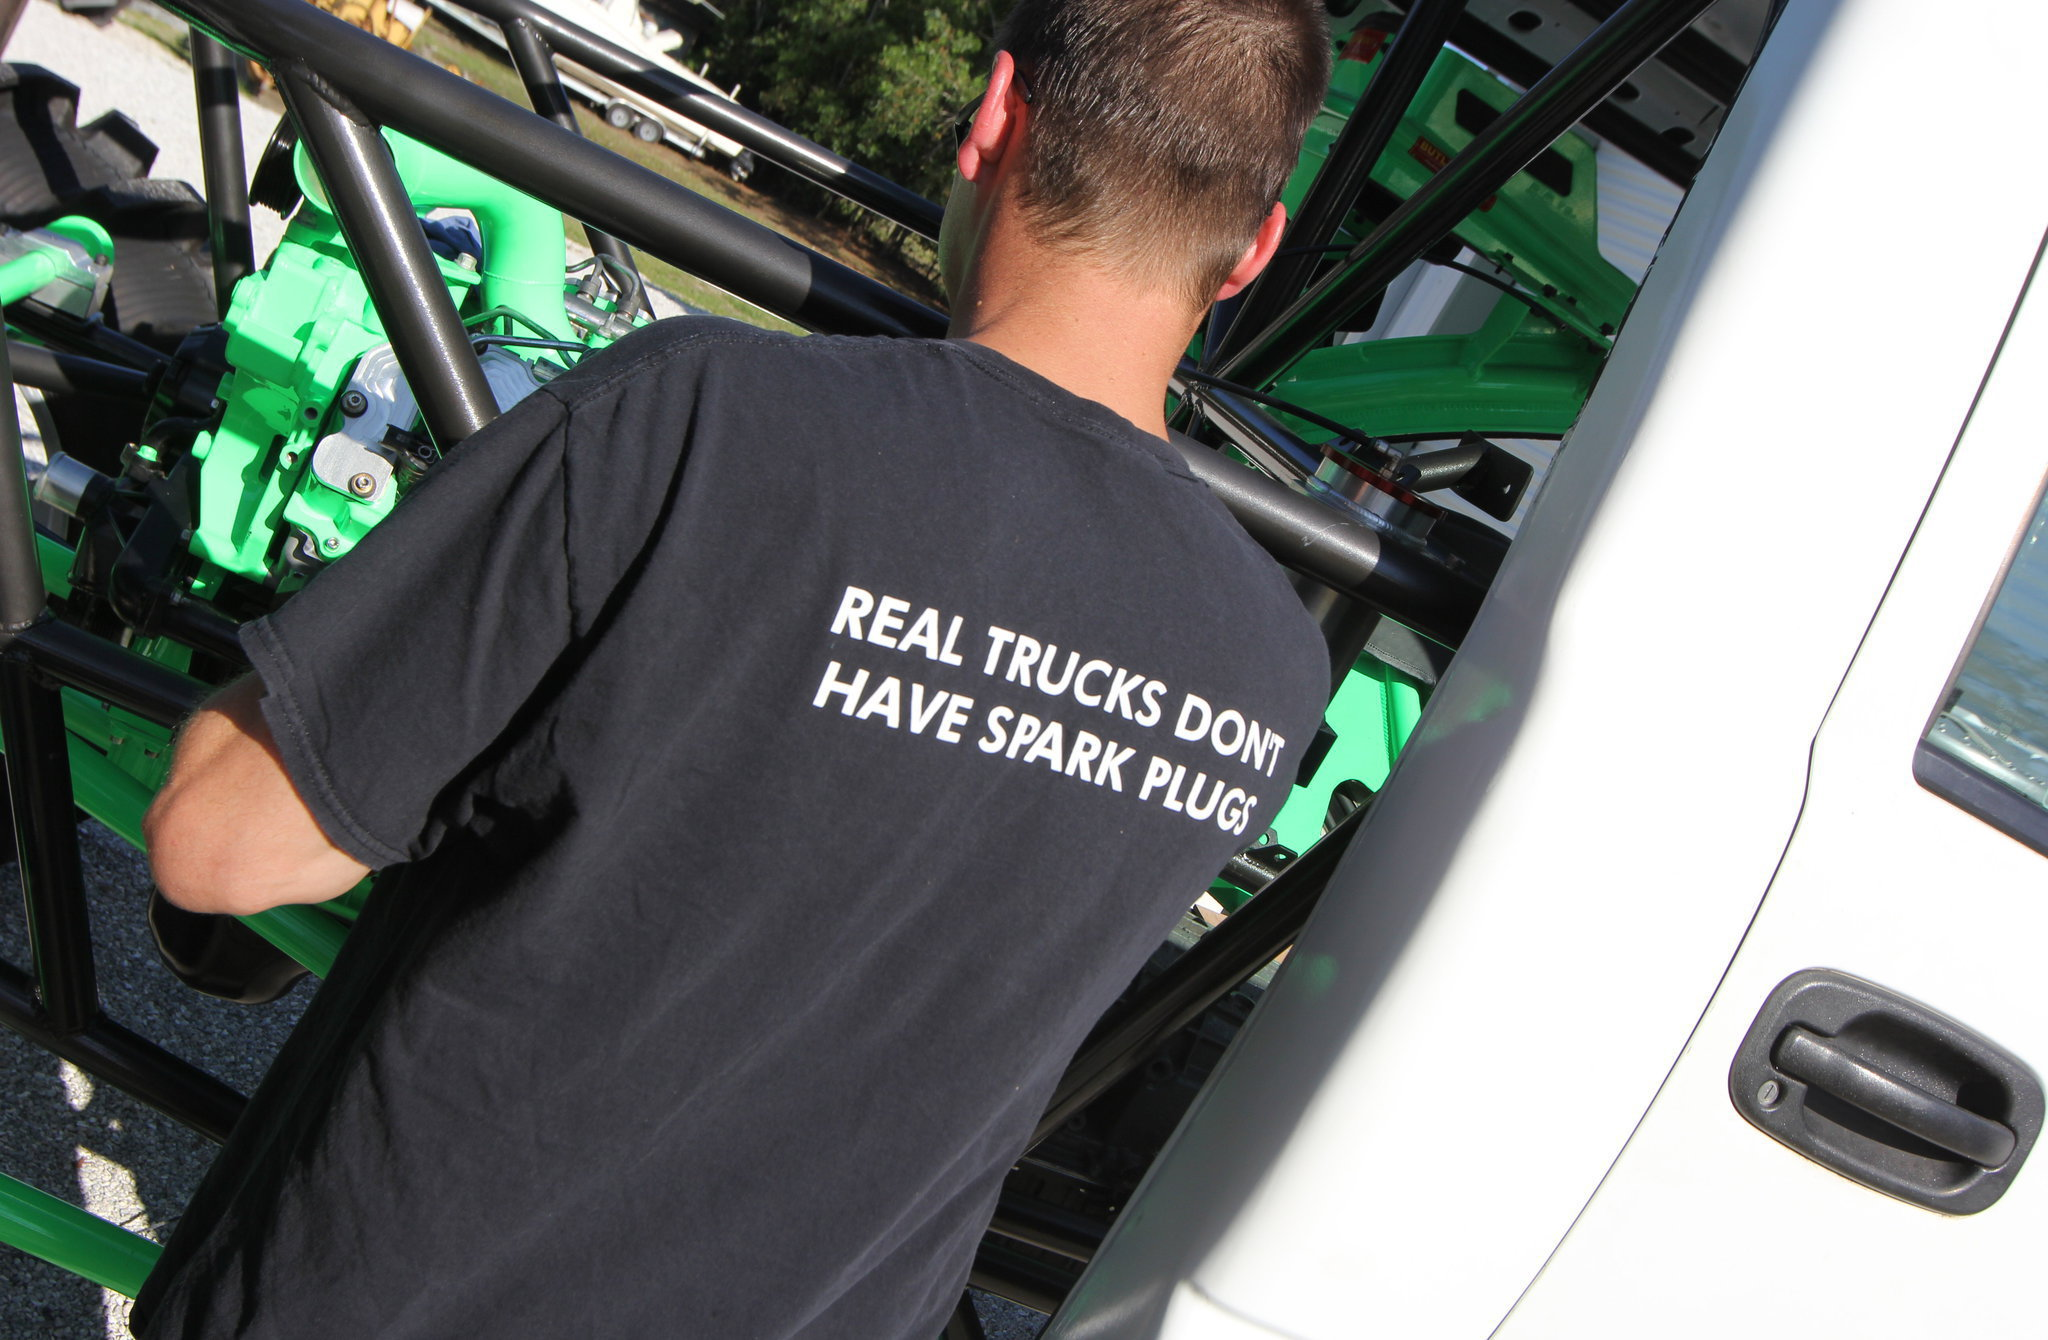 real trucks dont have spark plugs t shirt